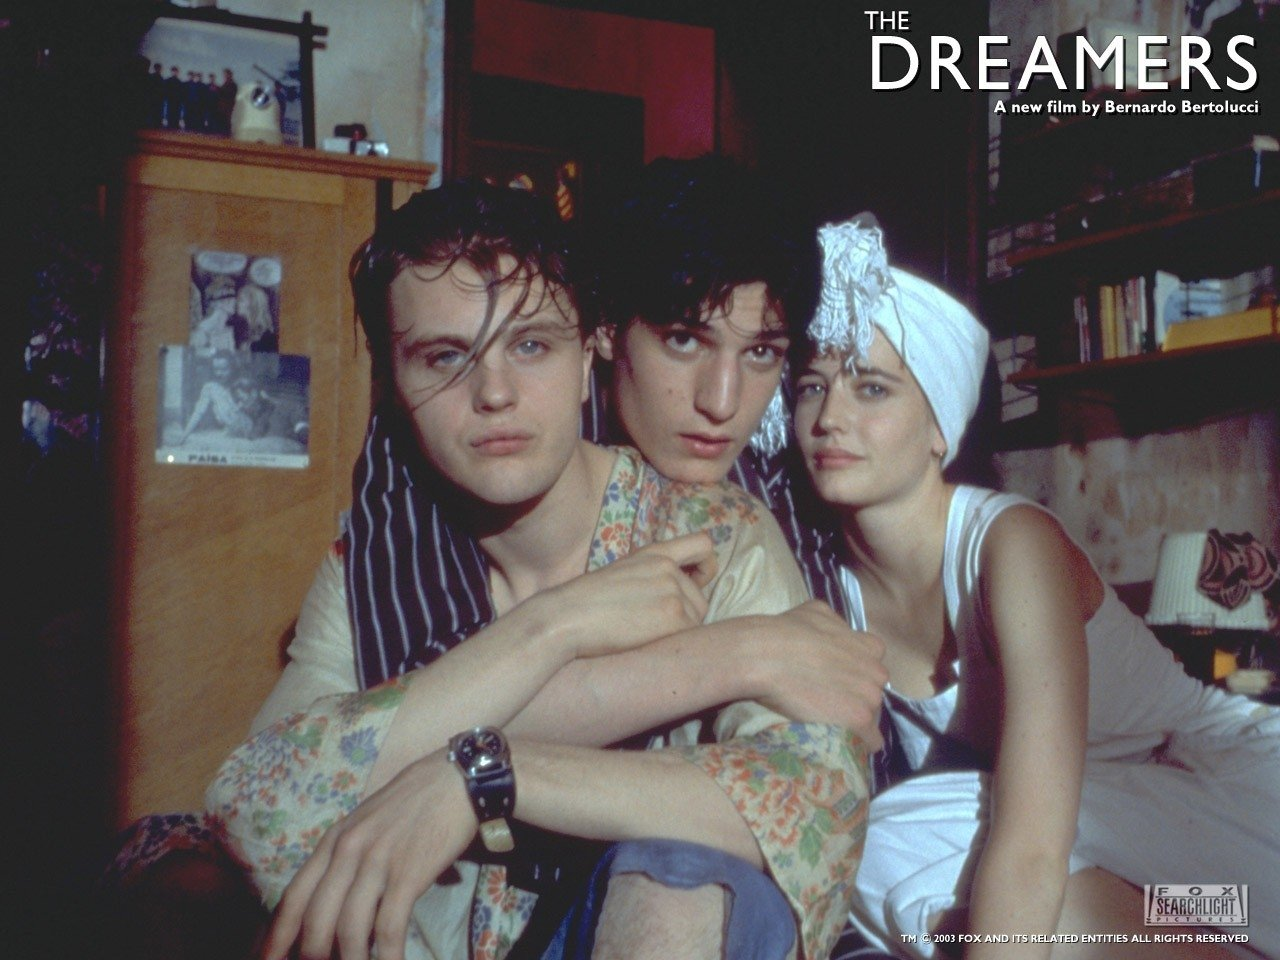 Wallpaper del film The dreamers - I sognatori in una delle scene più erotiche del film